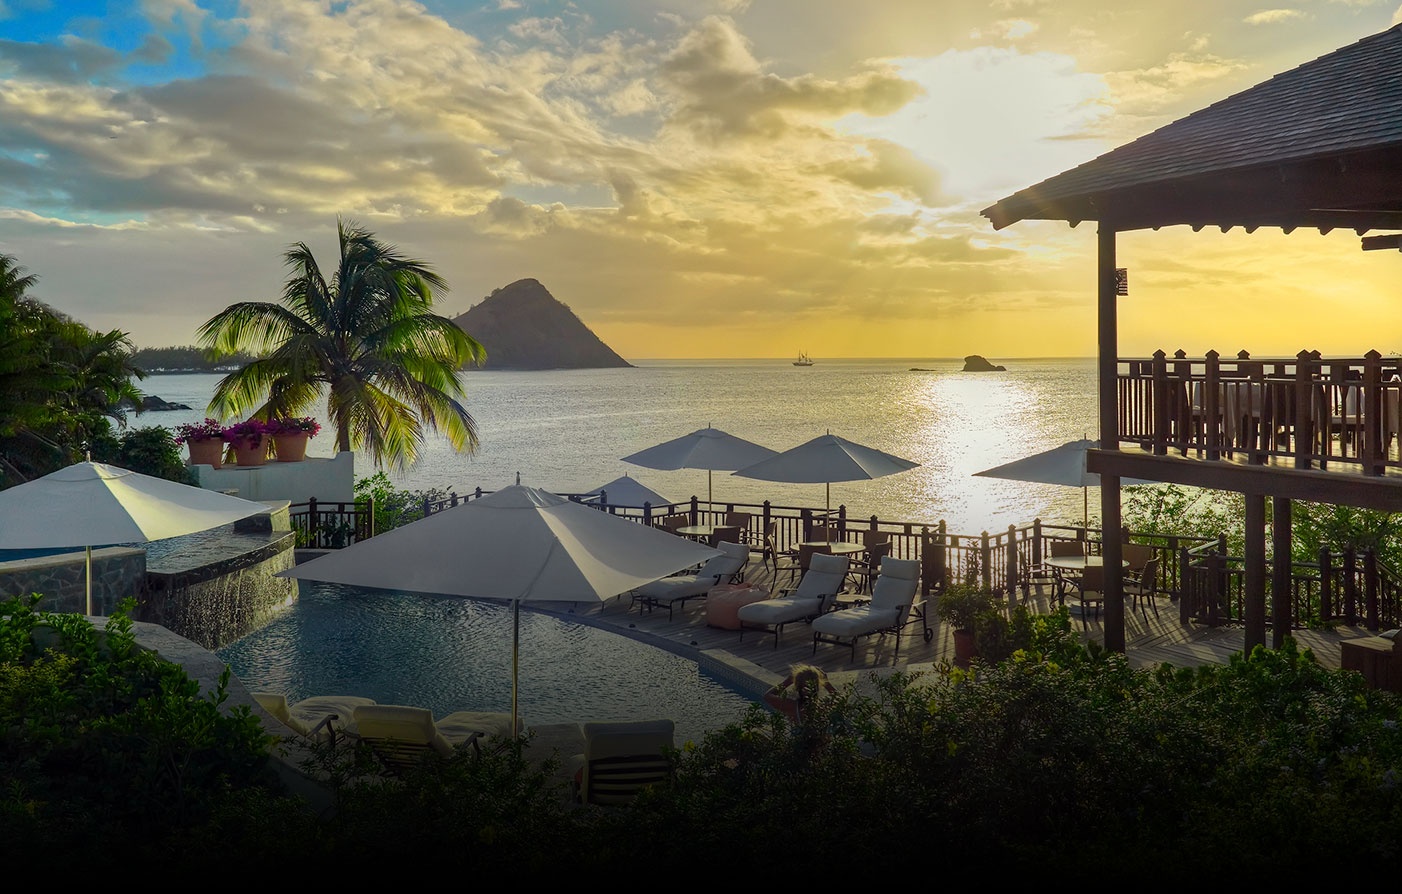 Cap maison resort spa st lucia activities for Cap maison resort and spa